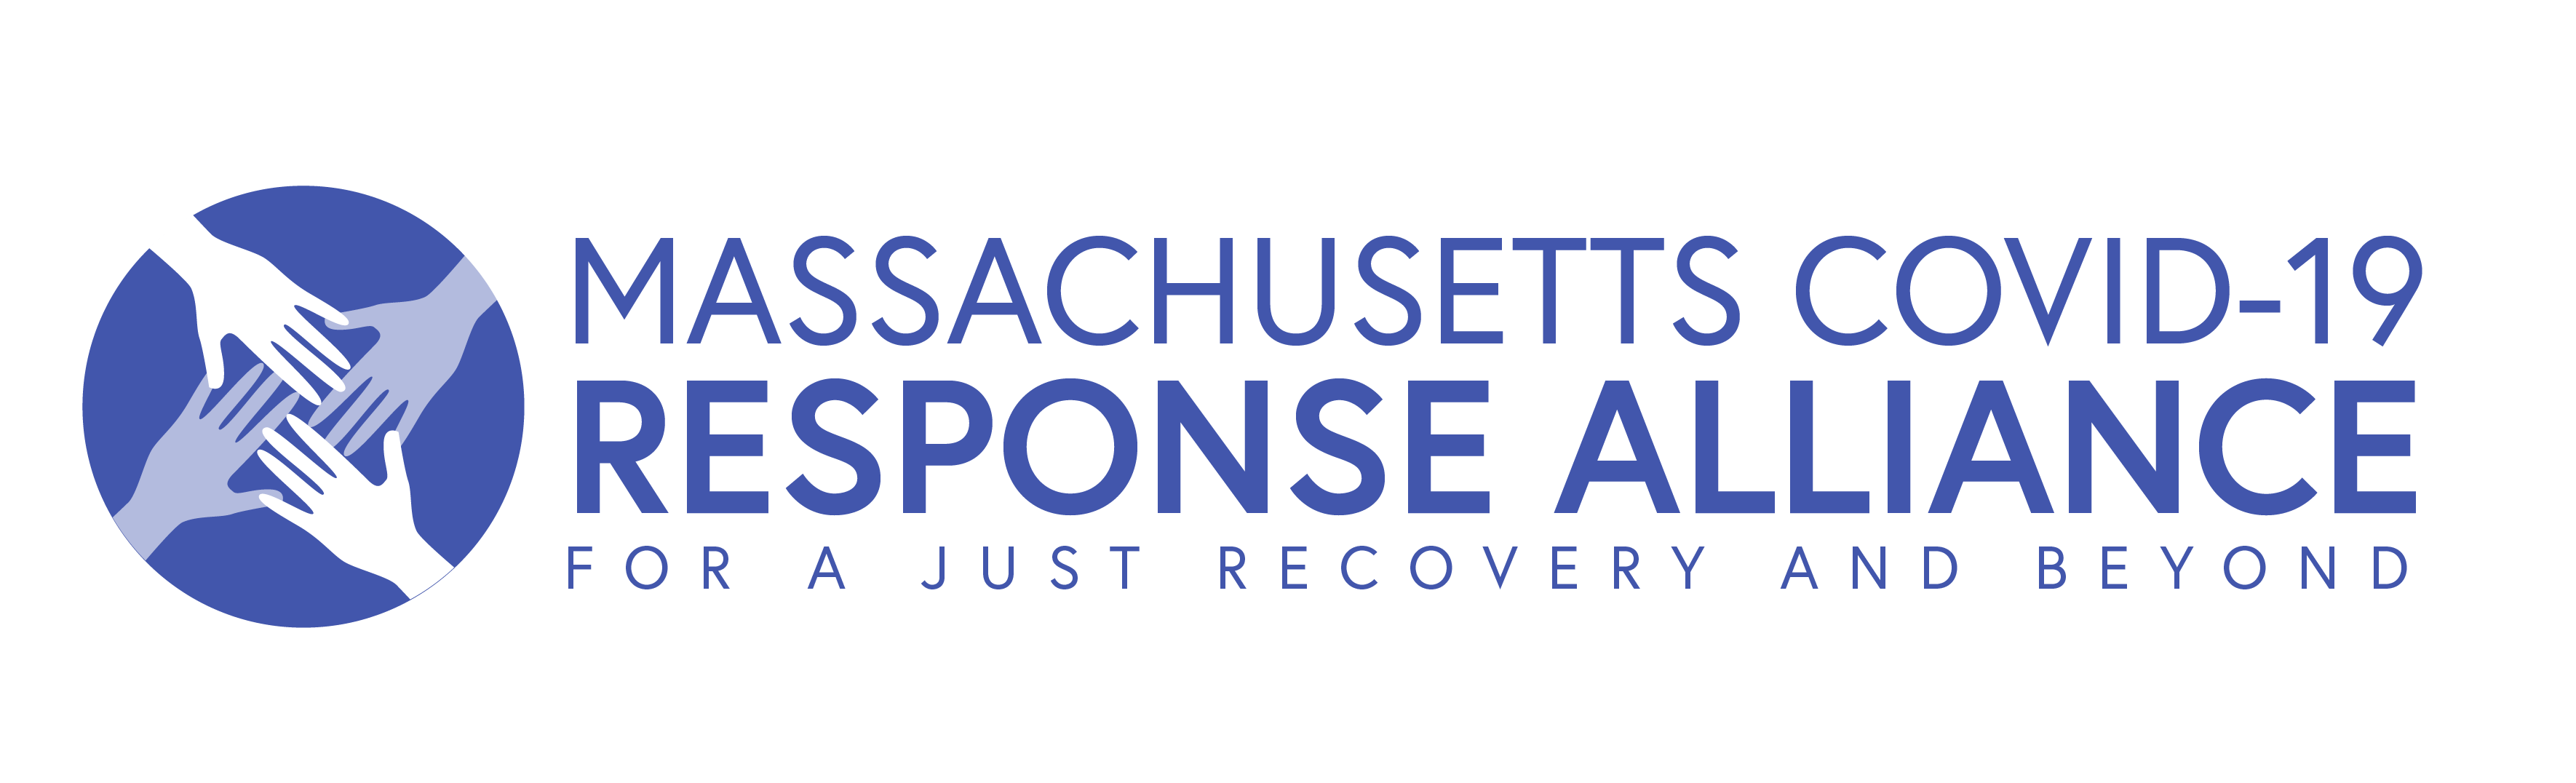 Massachusetts COVID-19 Response Alliance